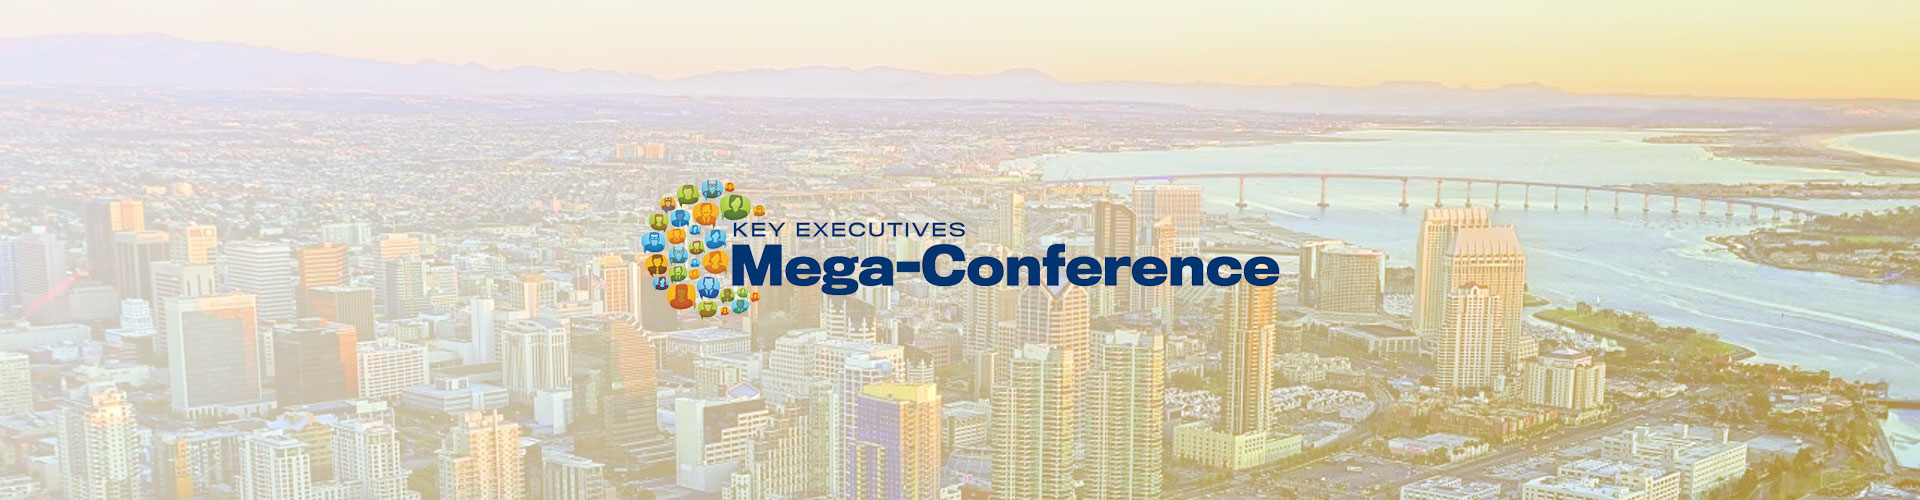 Header image of PageSuite to Exhibit at the Mega-Conference